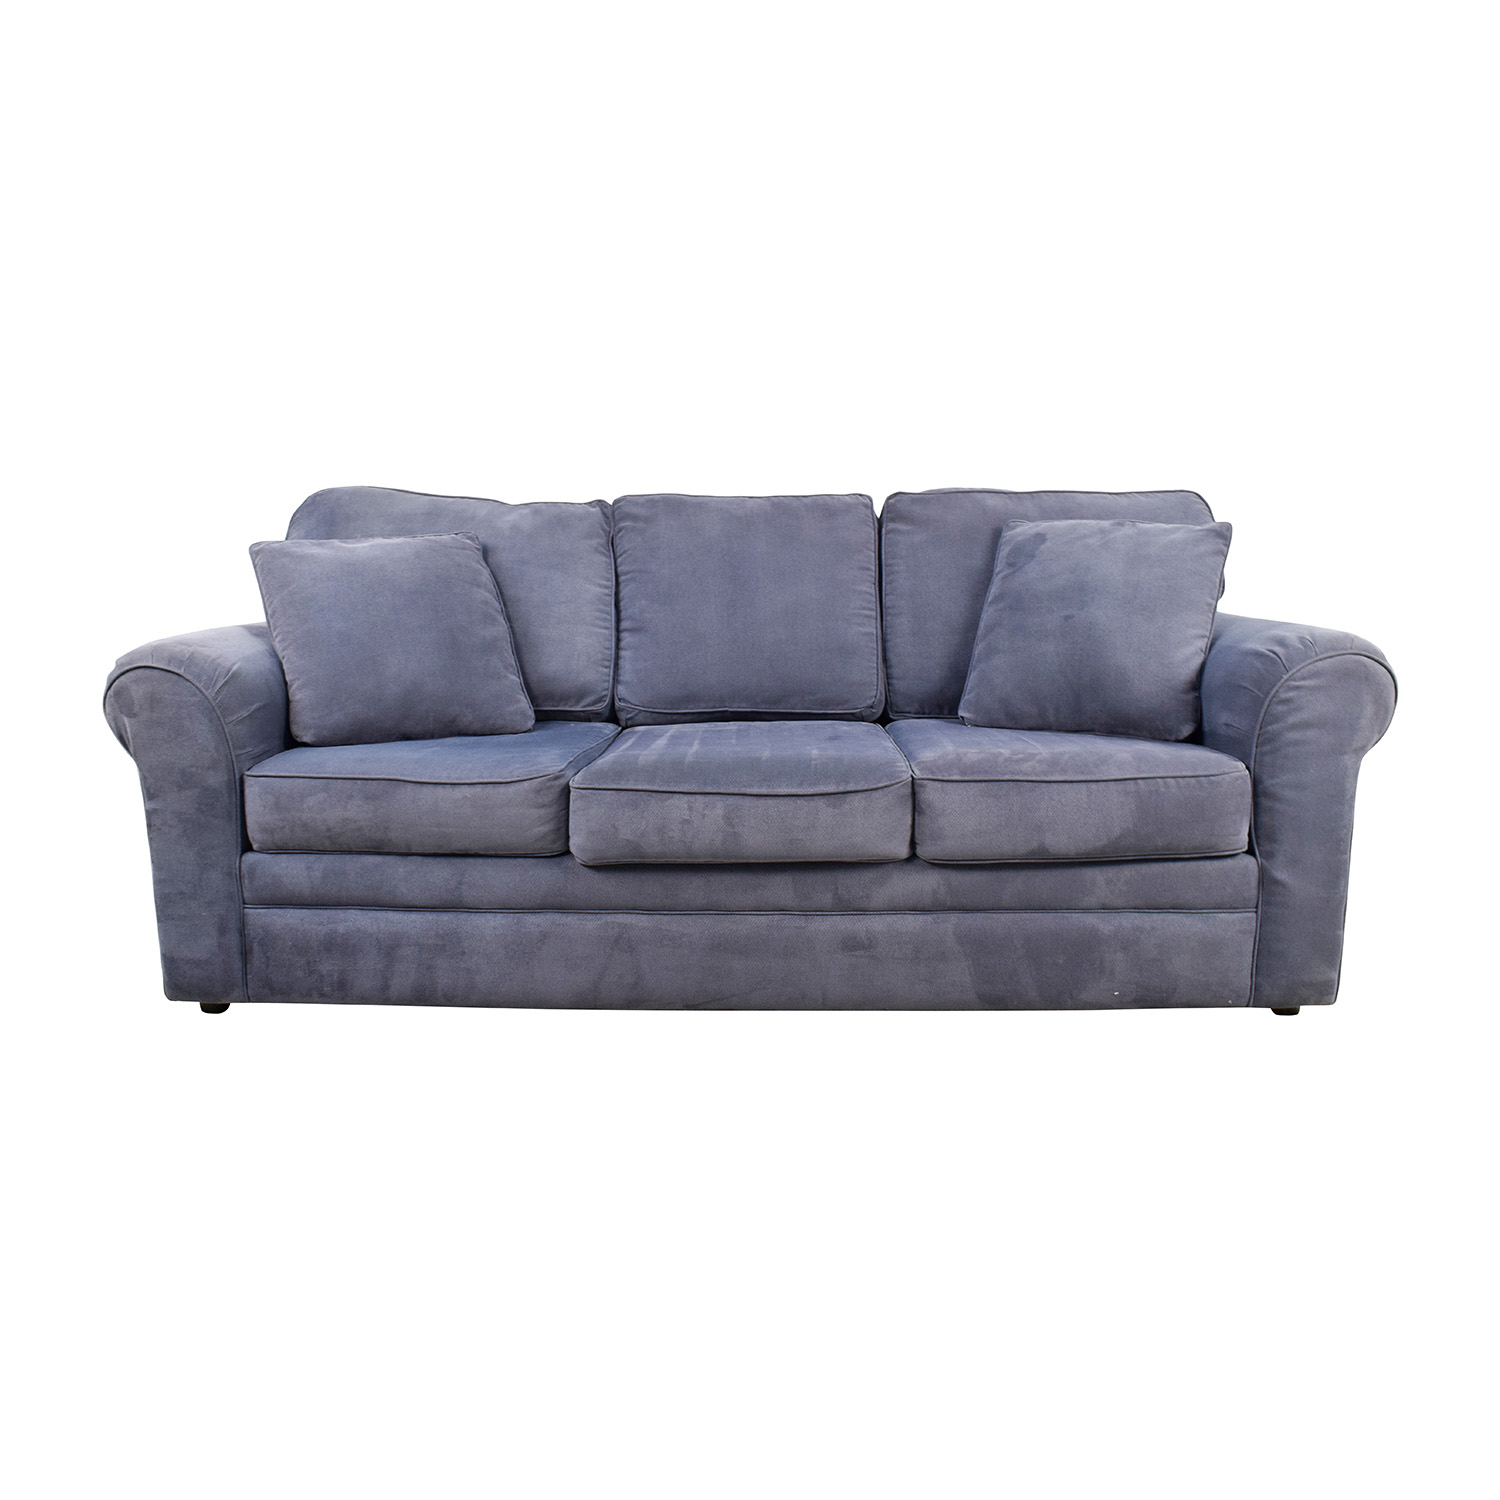 Klaussner Furniture Klaussner Hubbard Incline Naval Textured Velvet Sofa dimensions